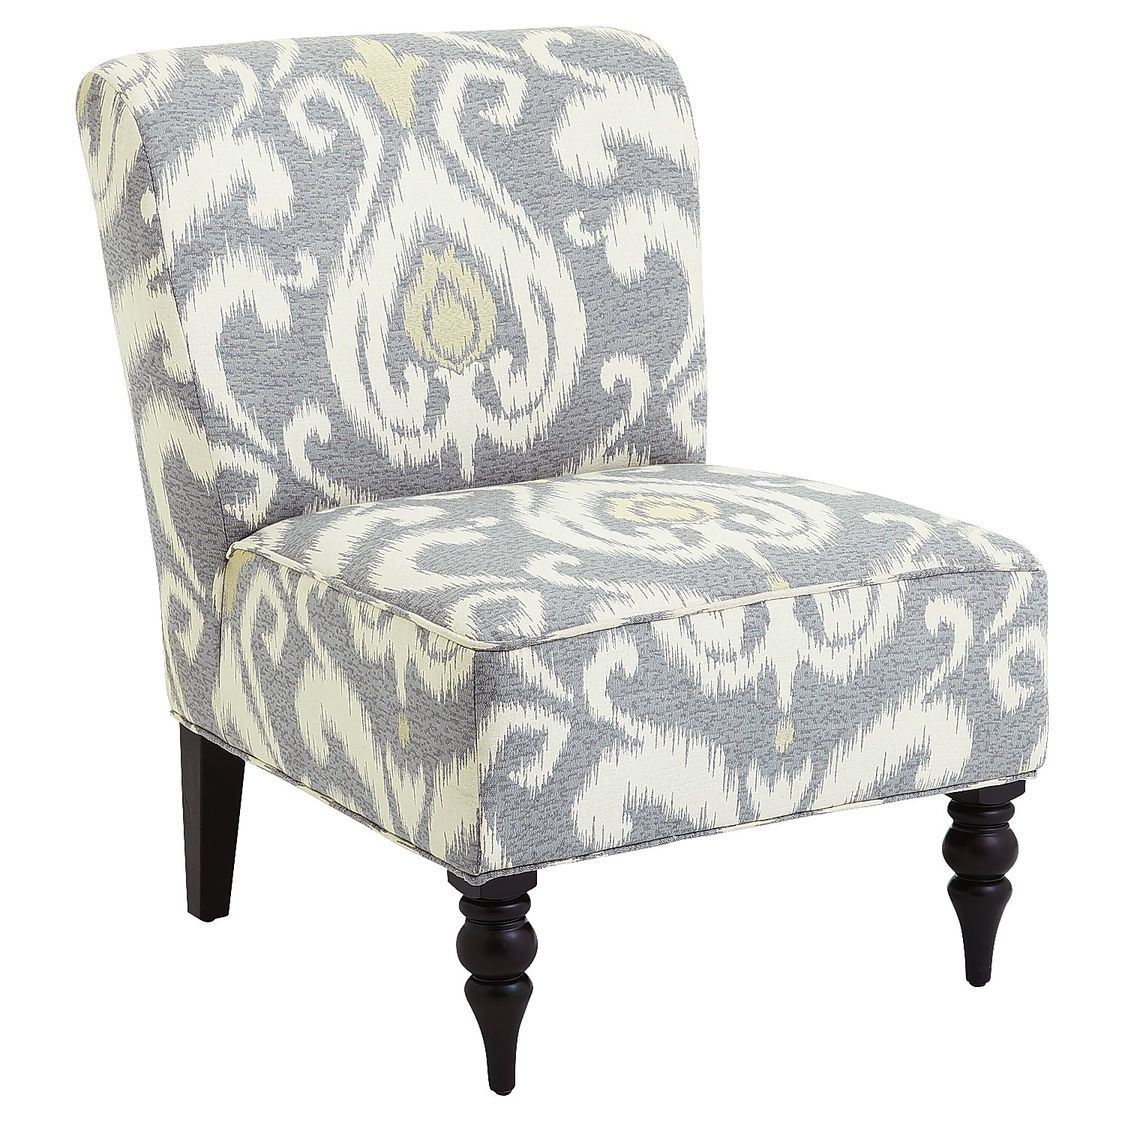 Addyson Chair - Gray Ikat Pier 1 $329.99